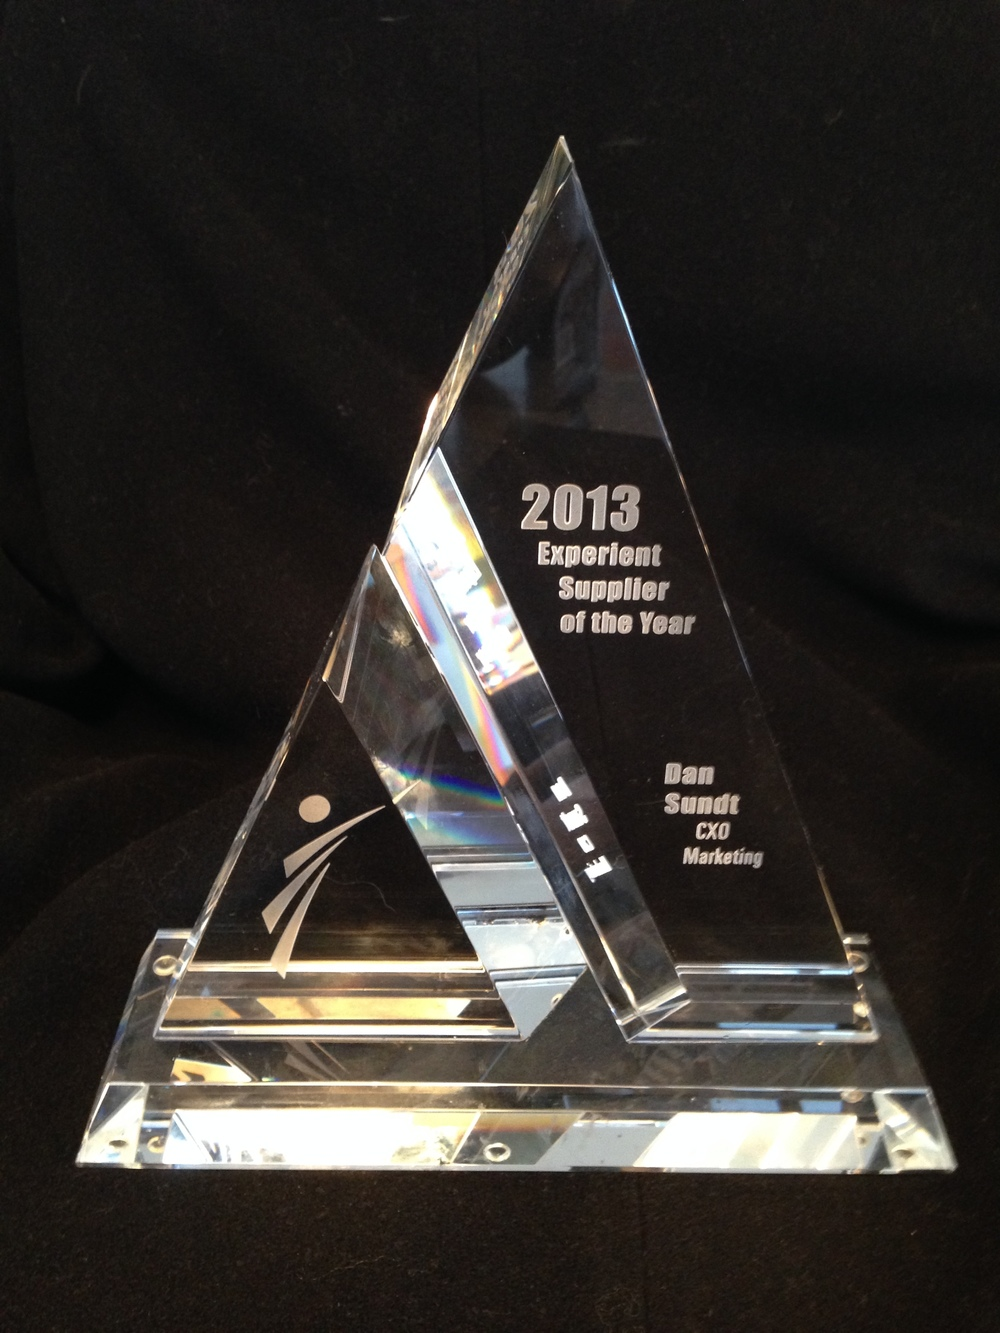 2013 Experience Supplier of the Year